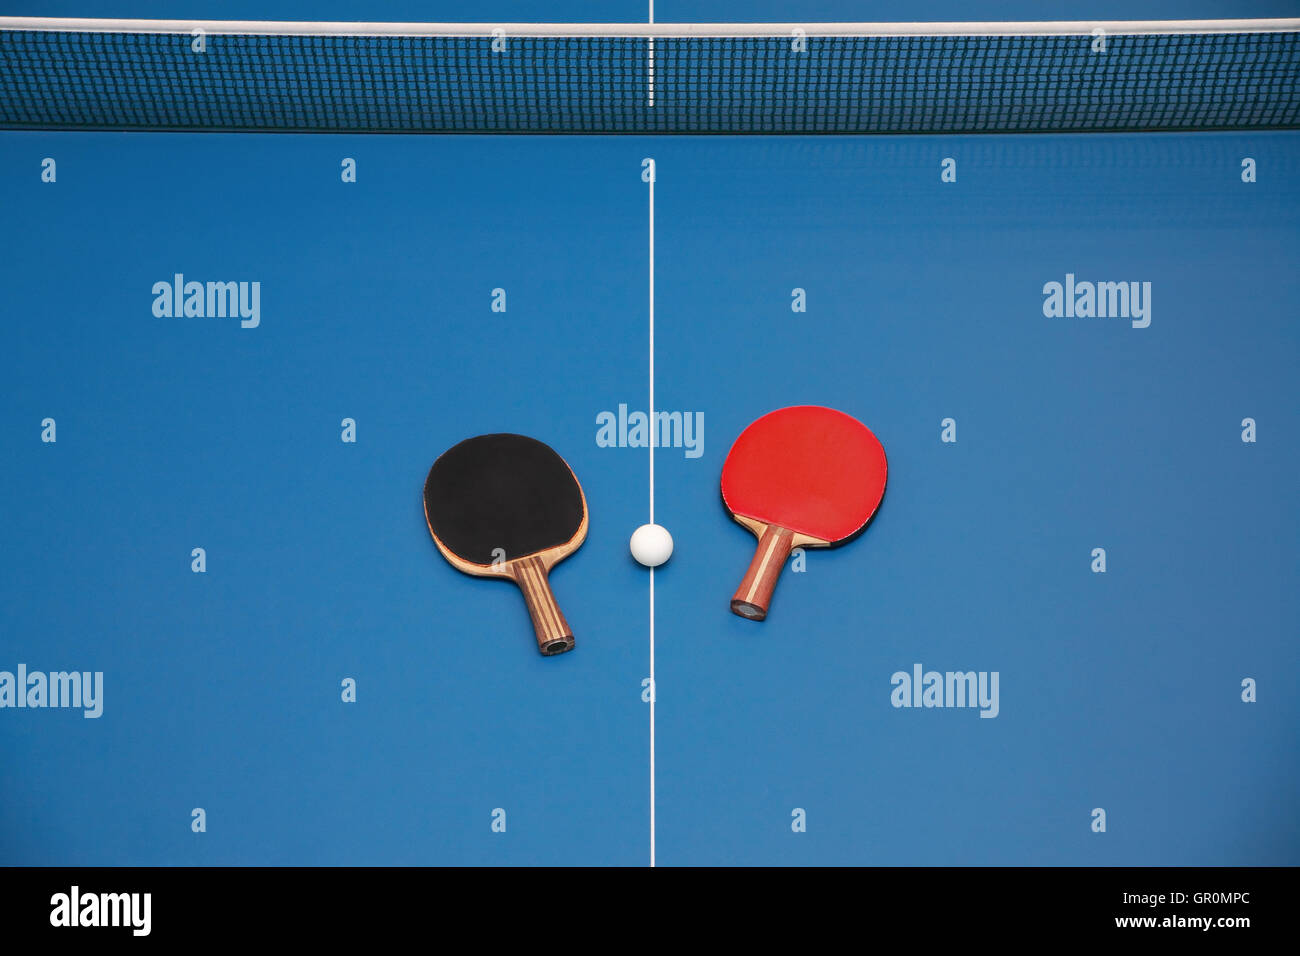 Rackets For Table Tennis Of Red And Black Color And A Ball On A